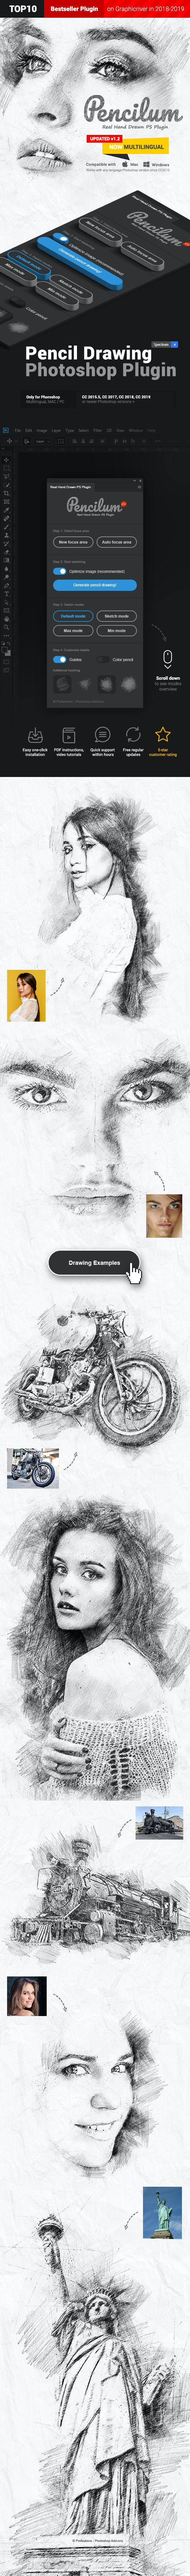 Pencil Sketch - Pencilum - Real Hand Drawn Photoshop Plugin - Photo Effects Actions